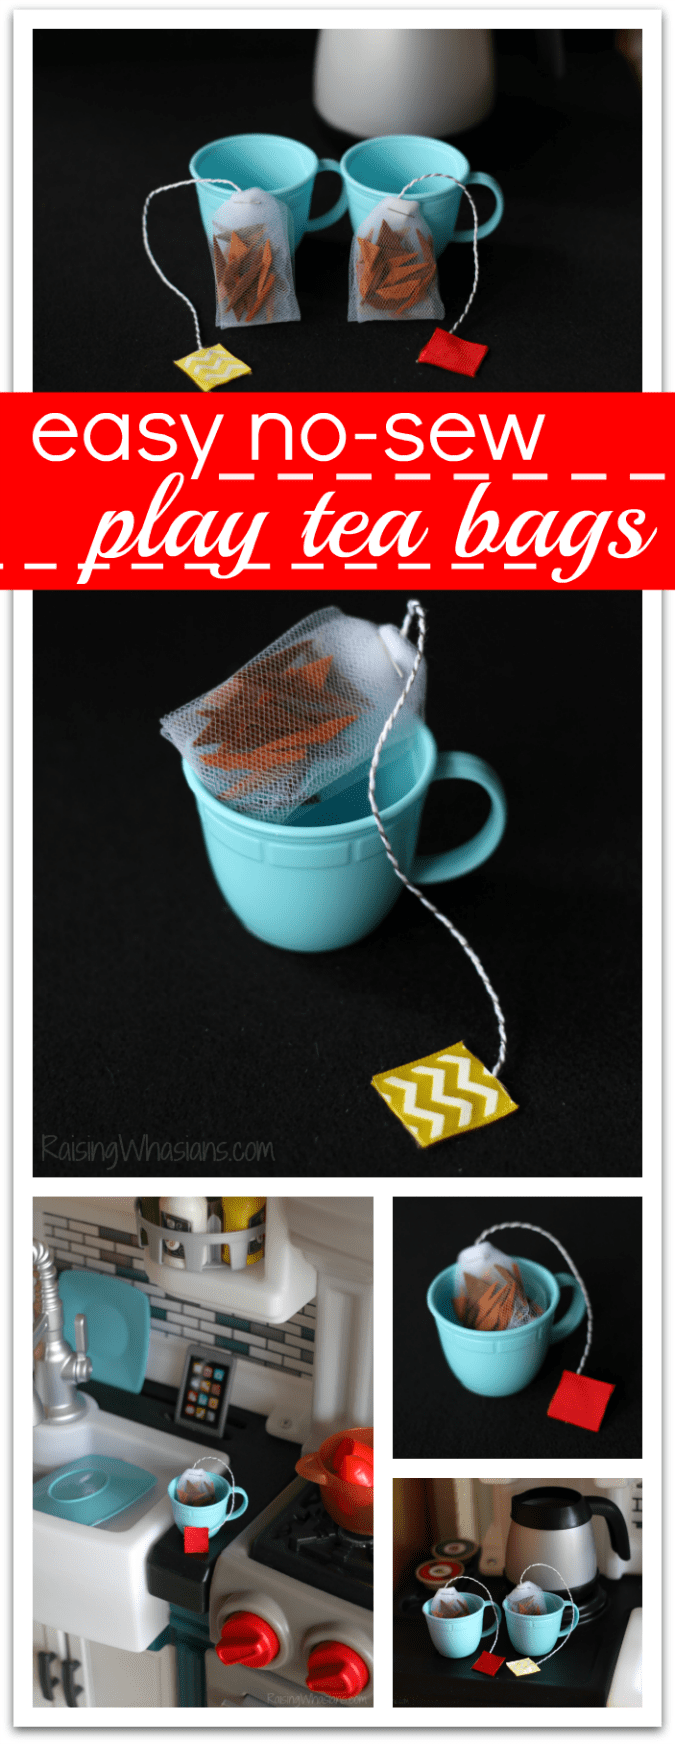 No sew play tea bags tutorial